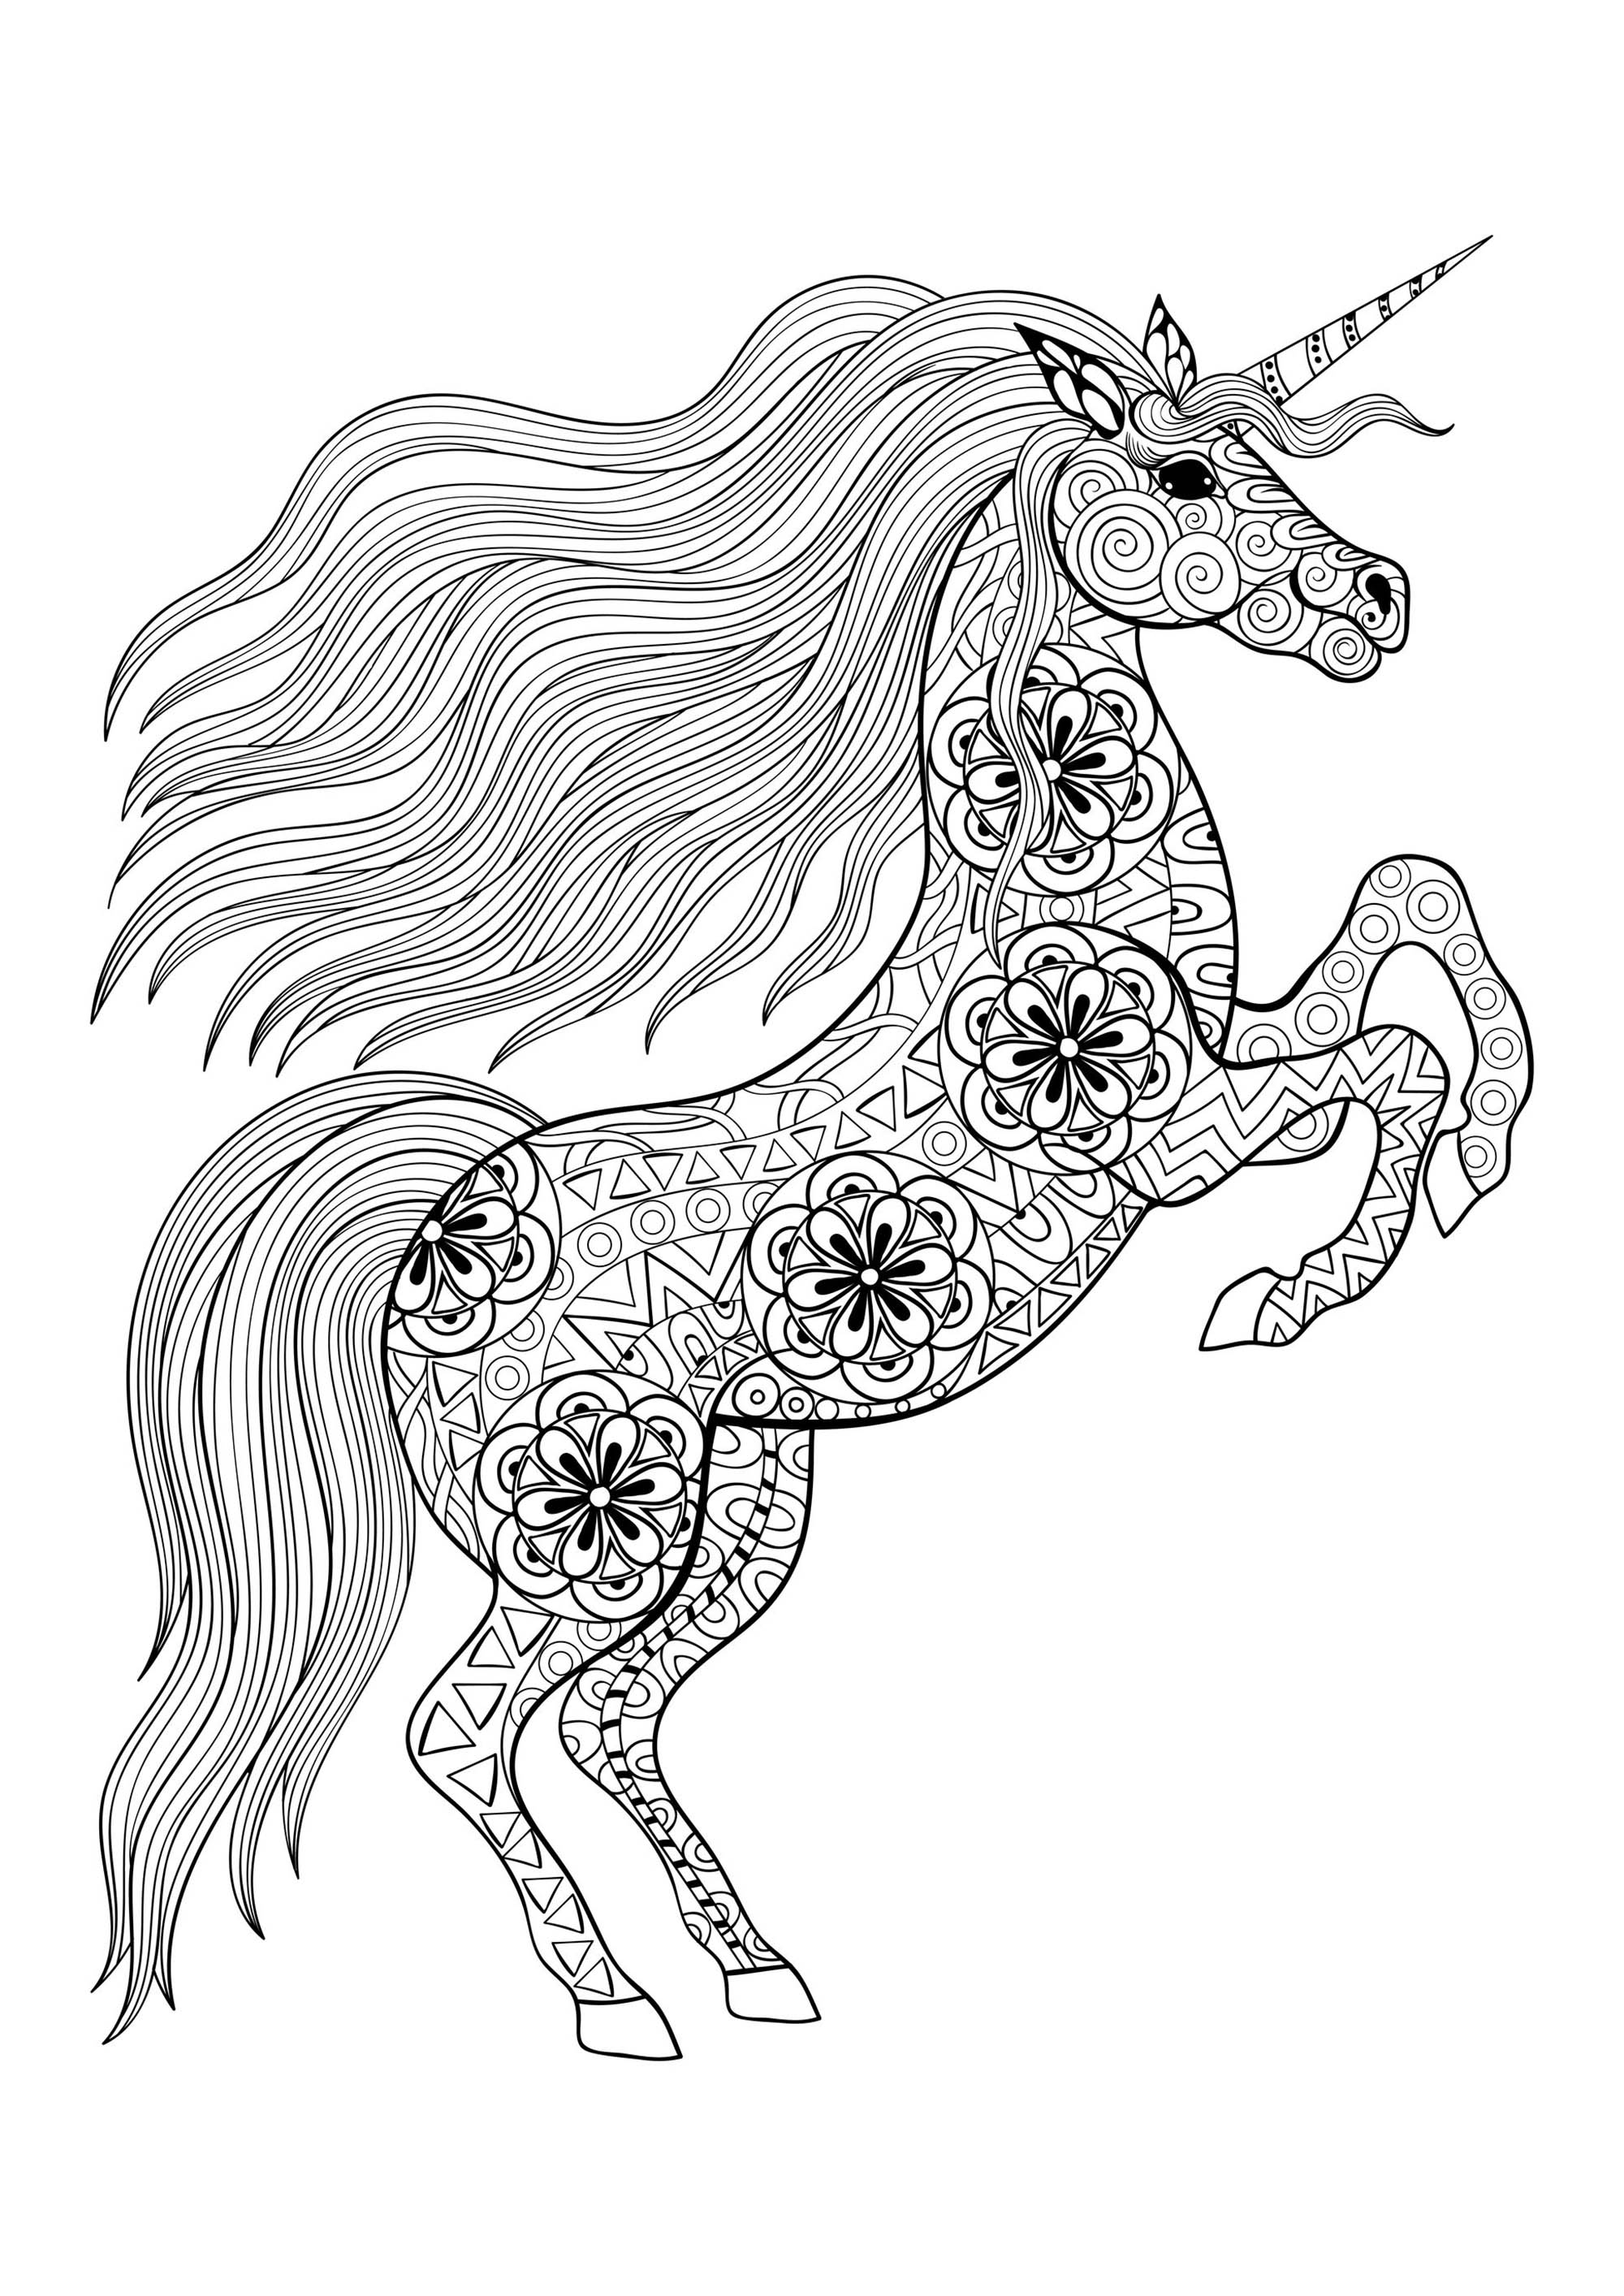 coloring for unicorn unicorn coloring pages pdf at getcoloringscom free for coloring unicorn